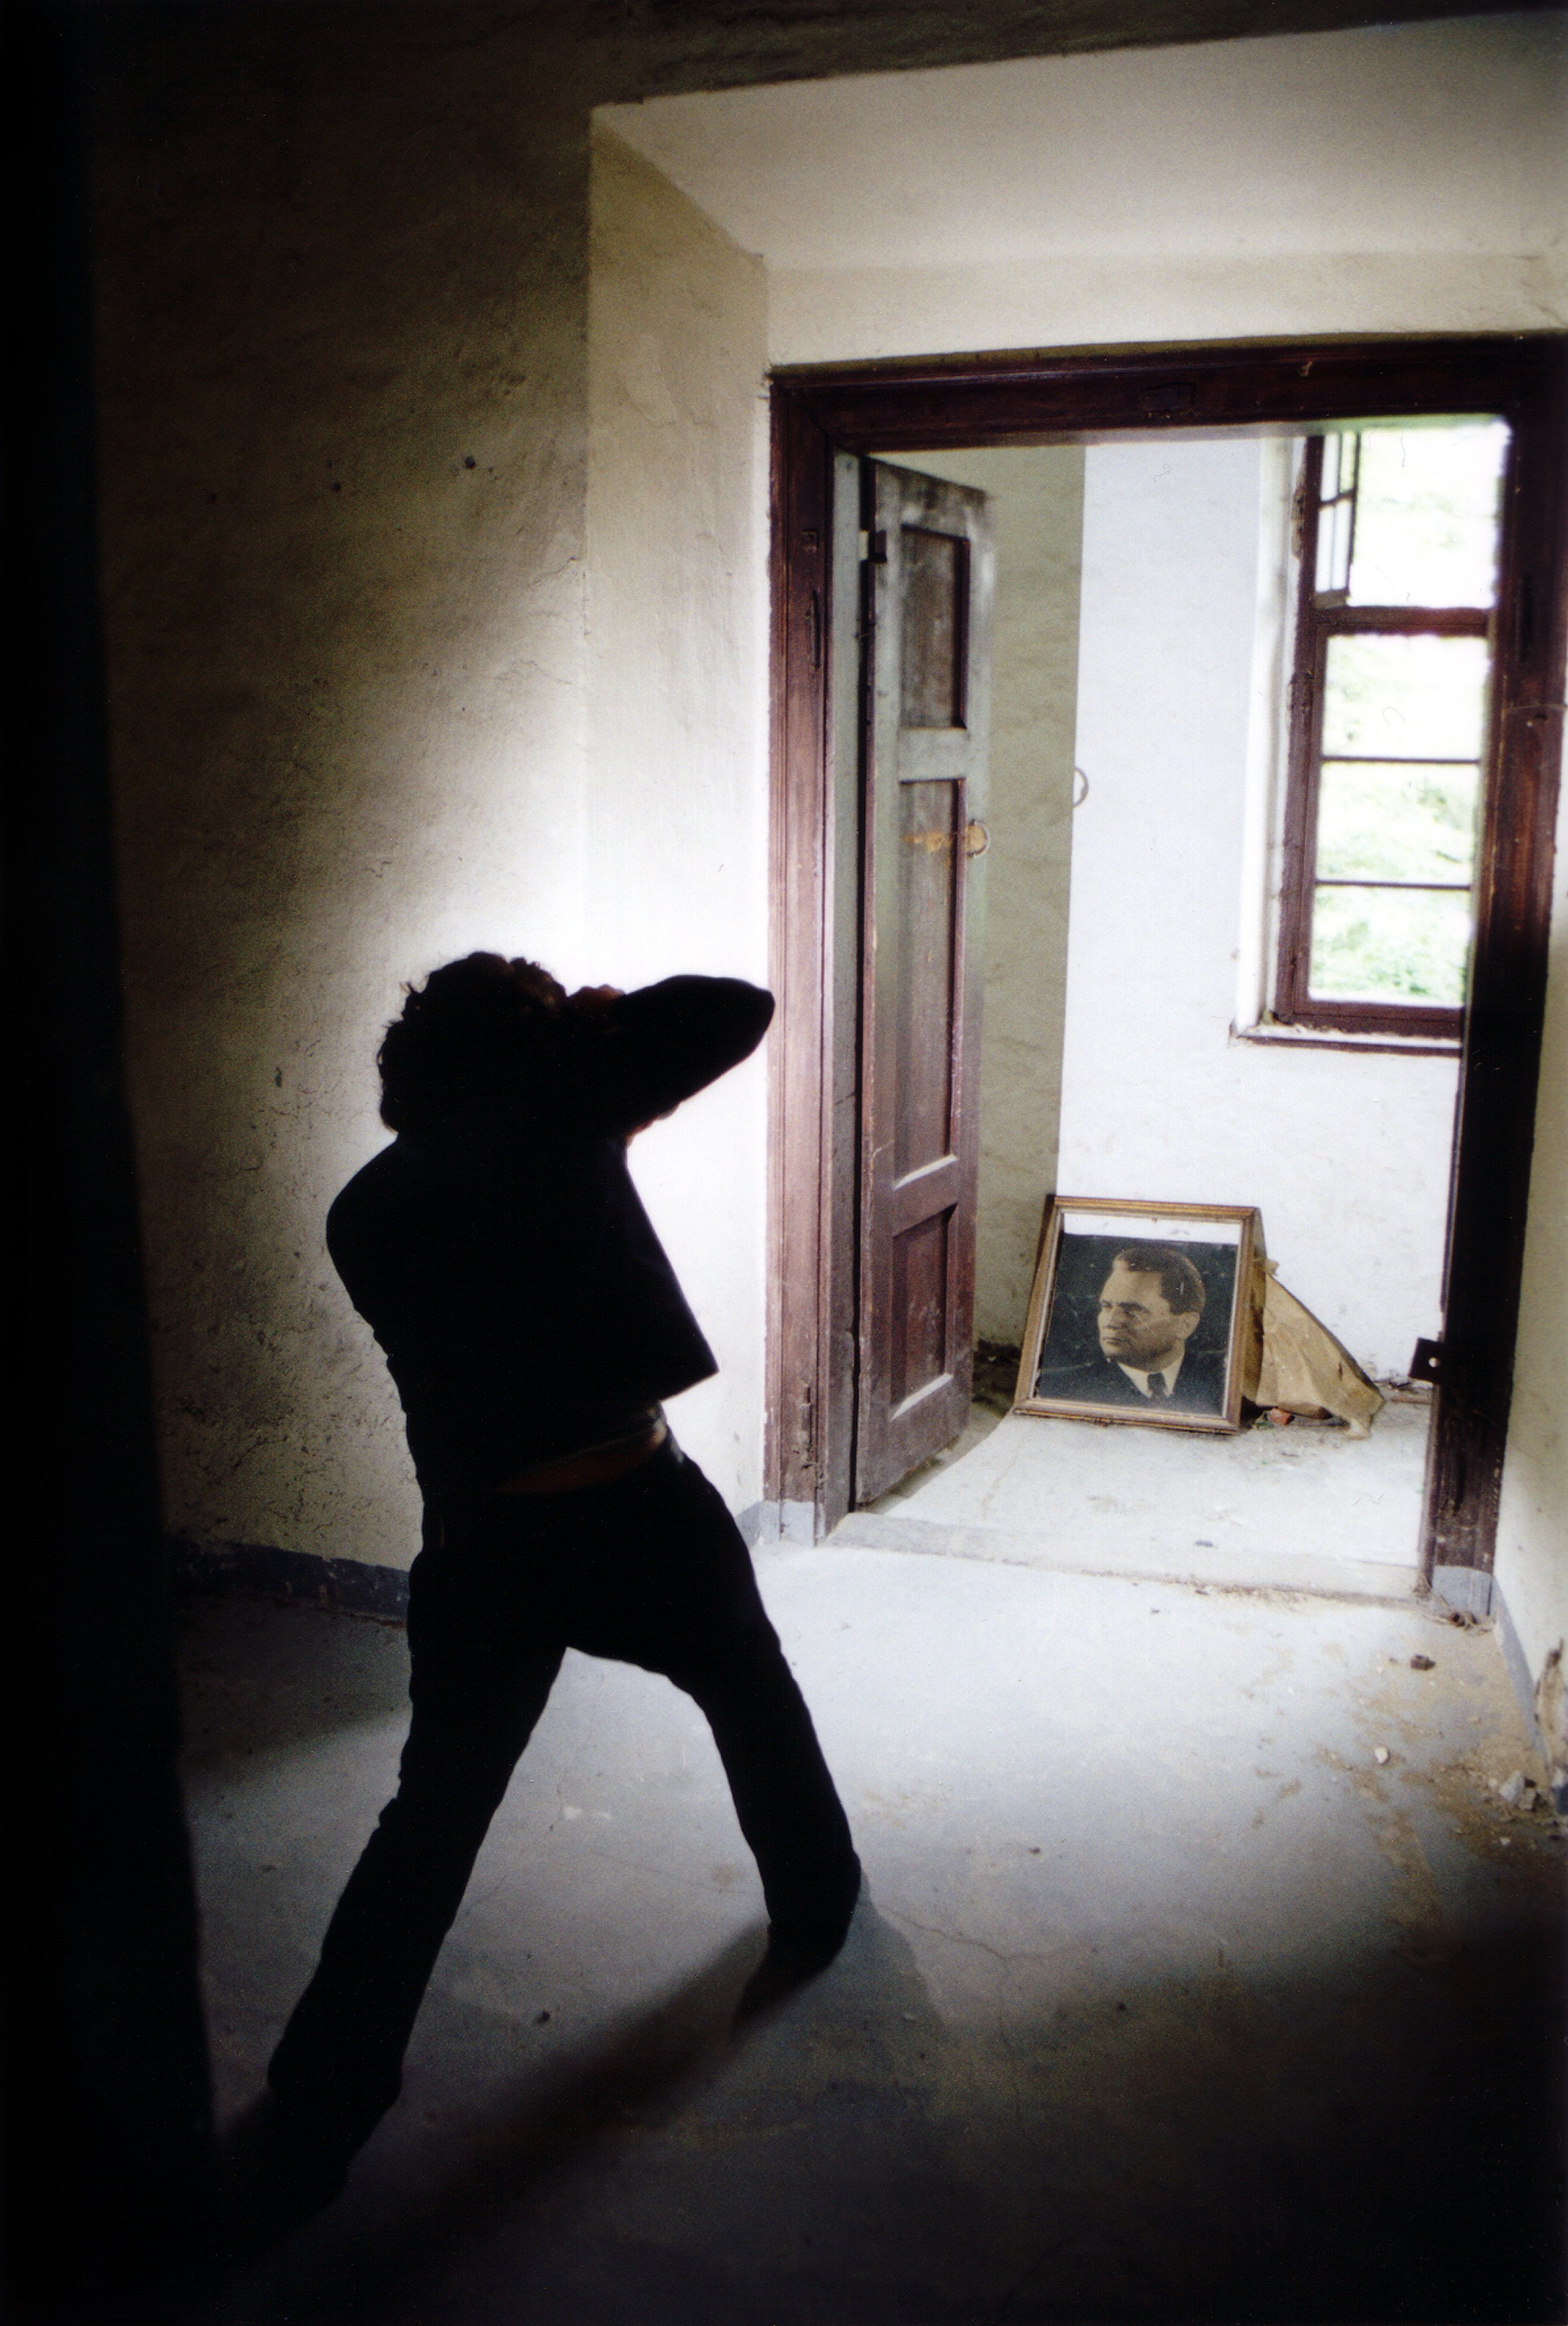 Tomislav Stajduhar: 'Portrait of a Portrait of a Portrait', 2003 Color Photograph, People. Artist Description: Portrait of a photographer taking a photo of an abandoned portrait in an ancient and derelict castle. ...